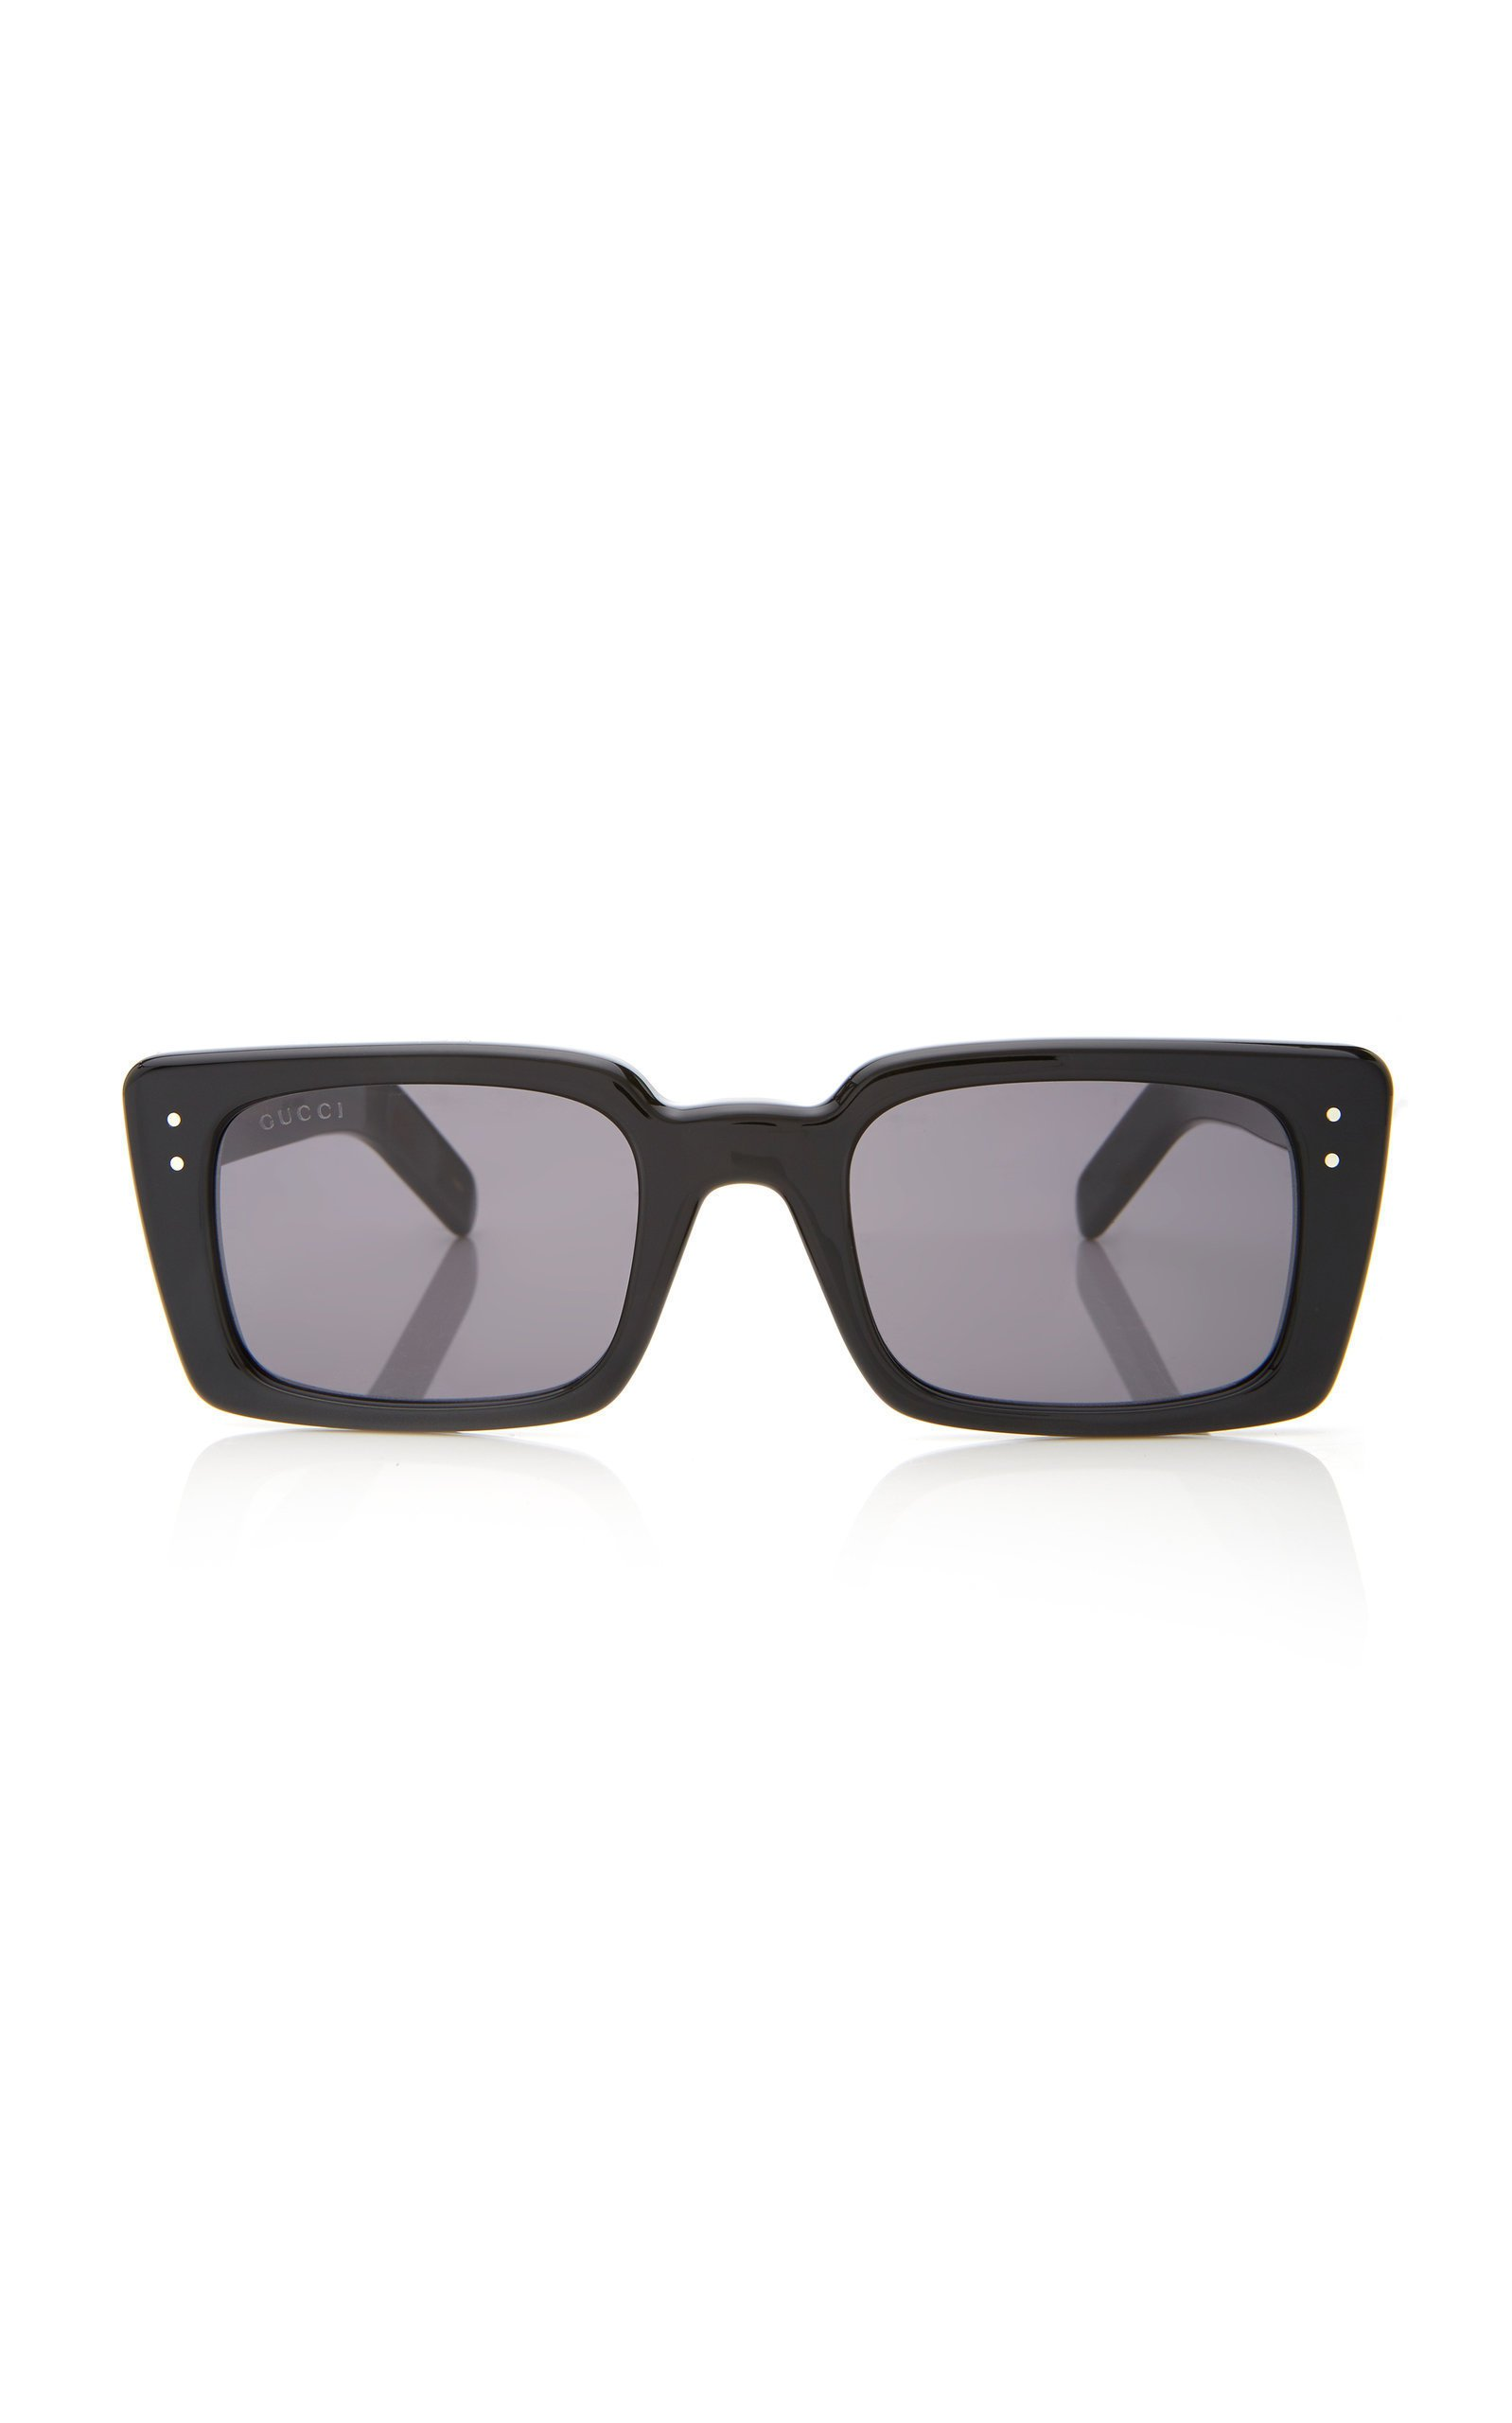 Gucci Two-Tone Square-Frame Acetate Sunglasses